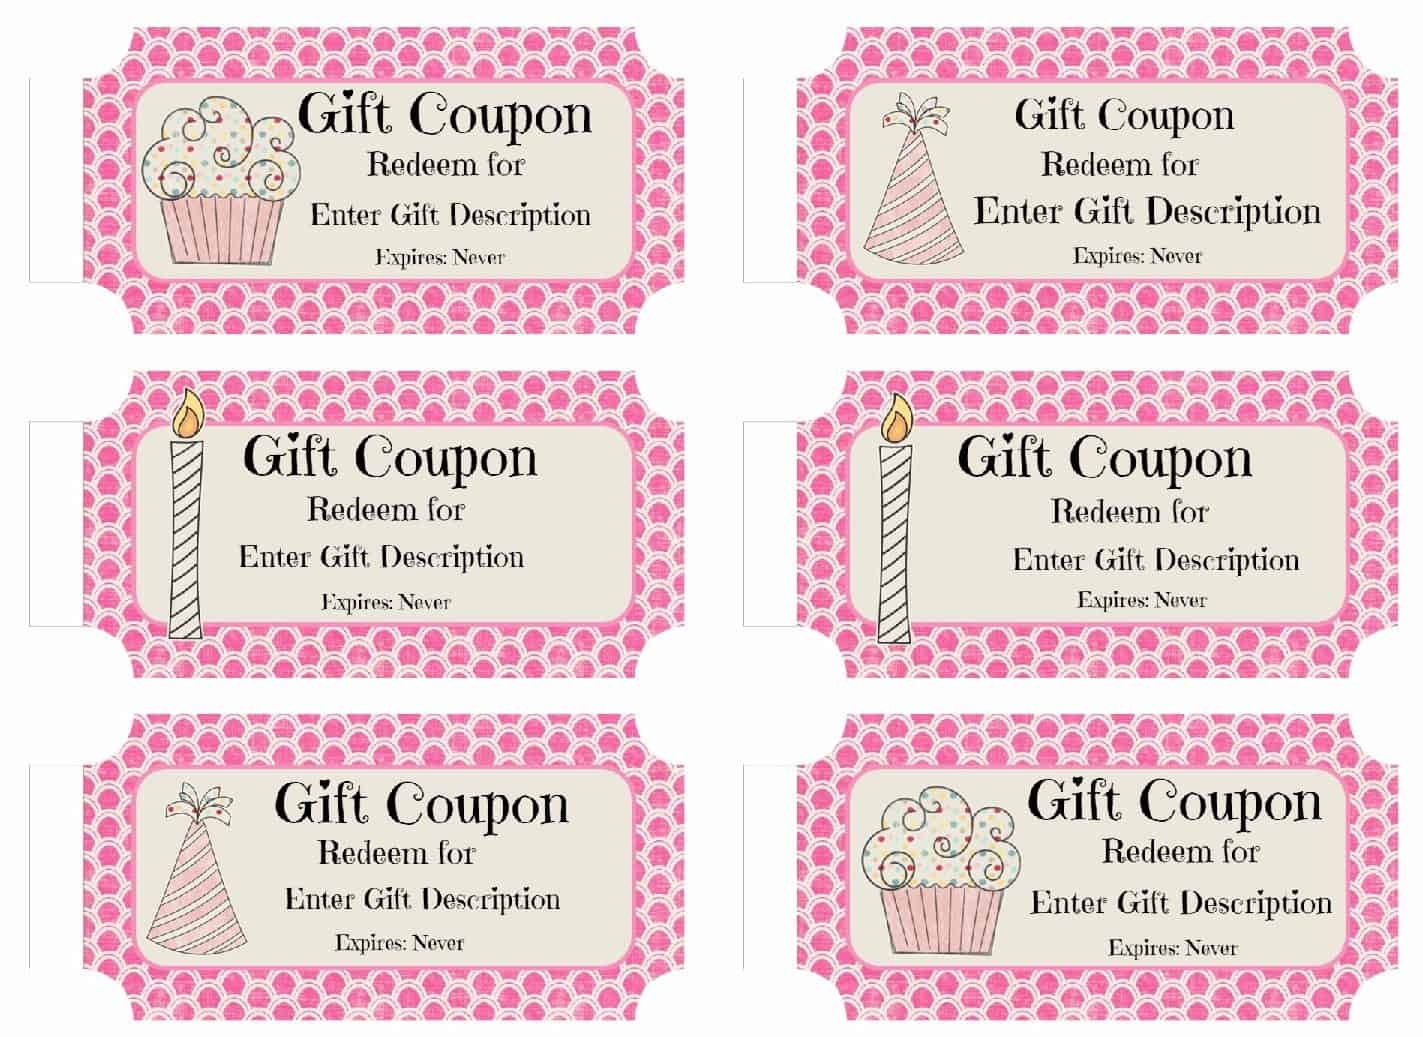 Discount coupons for